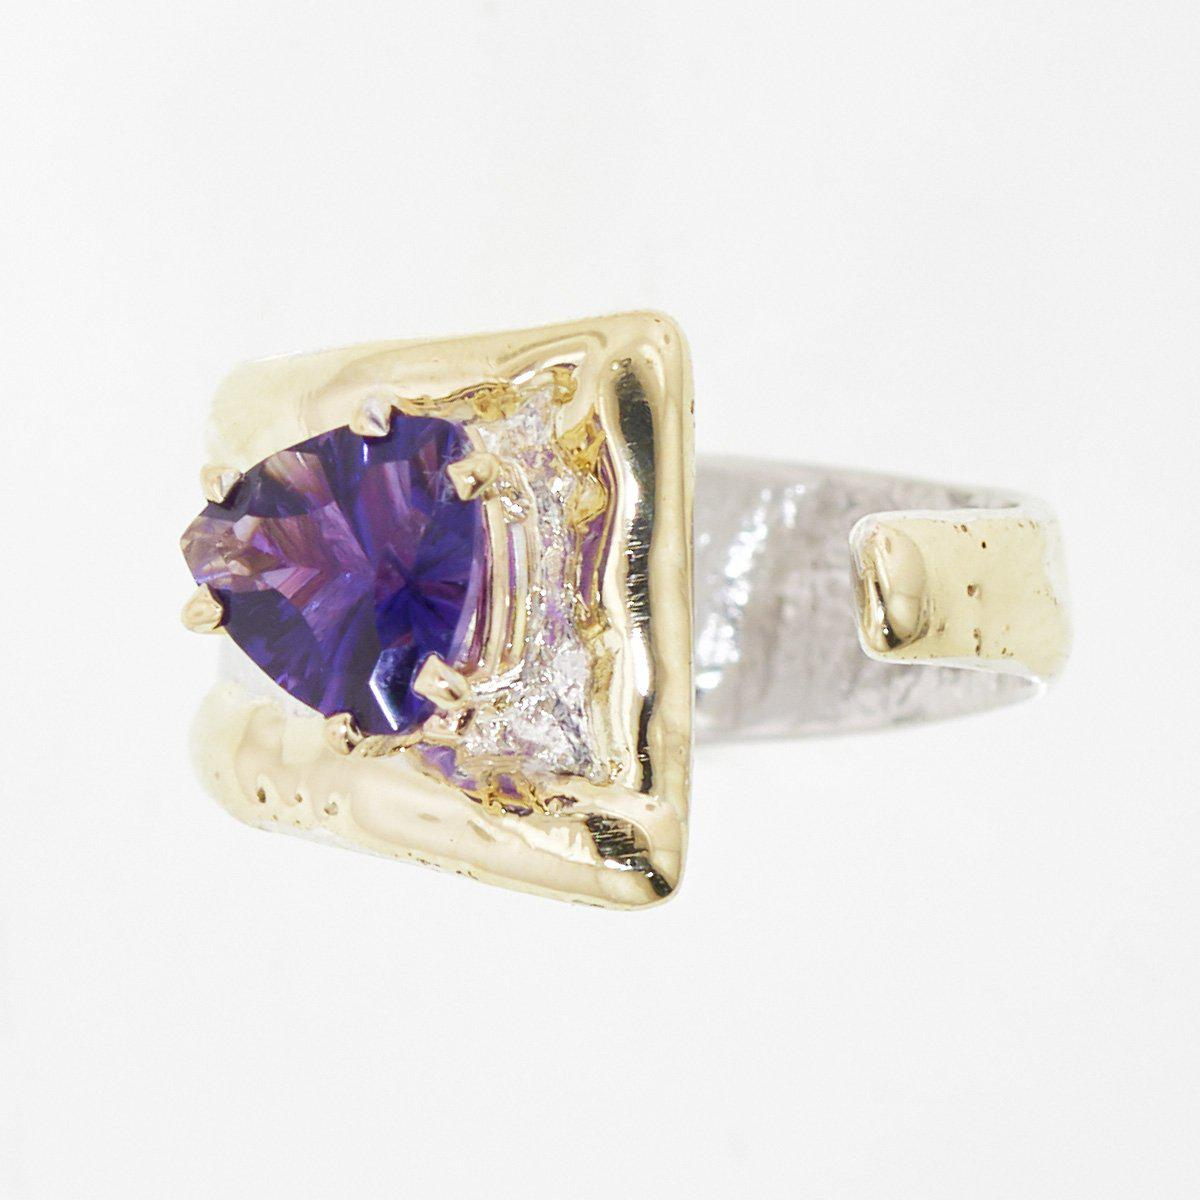 14K Gold & Crystalline Silver Amethyst Ring - 32871-Fusion Designs-Renee Taylor Gallery